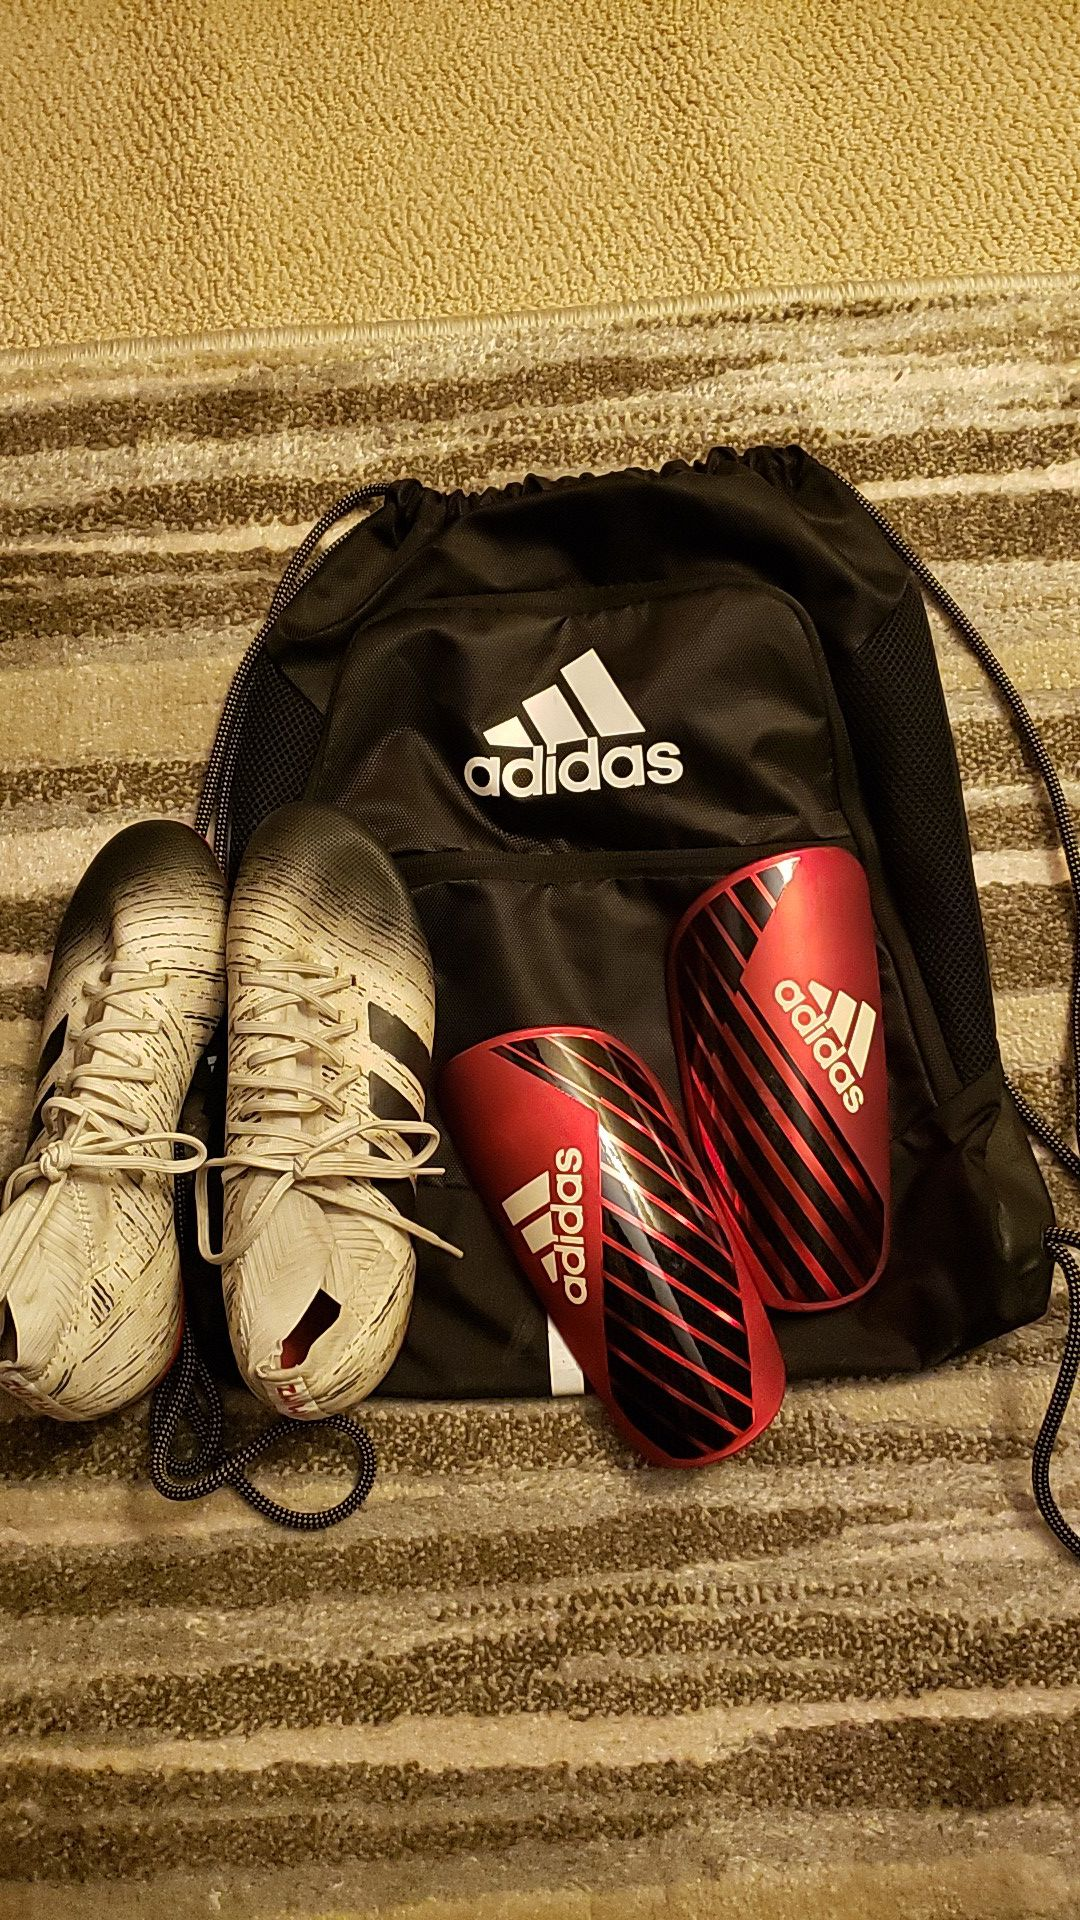 Soccer Shoes, Bag and Shin Guards